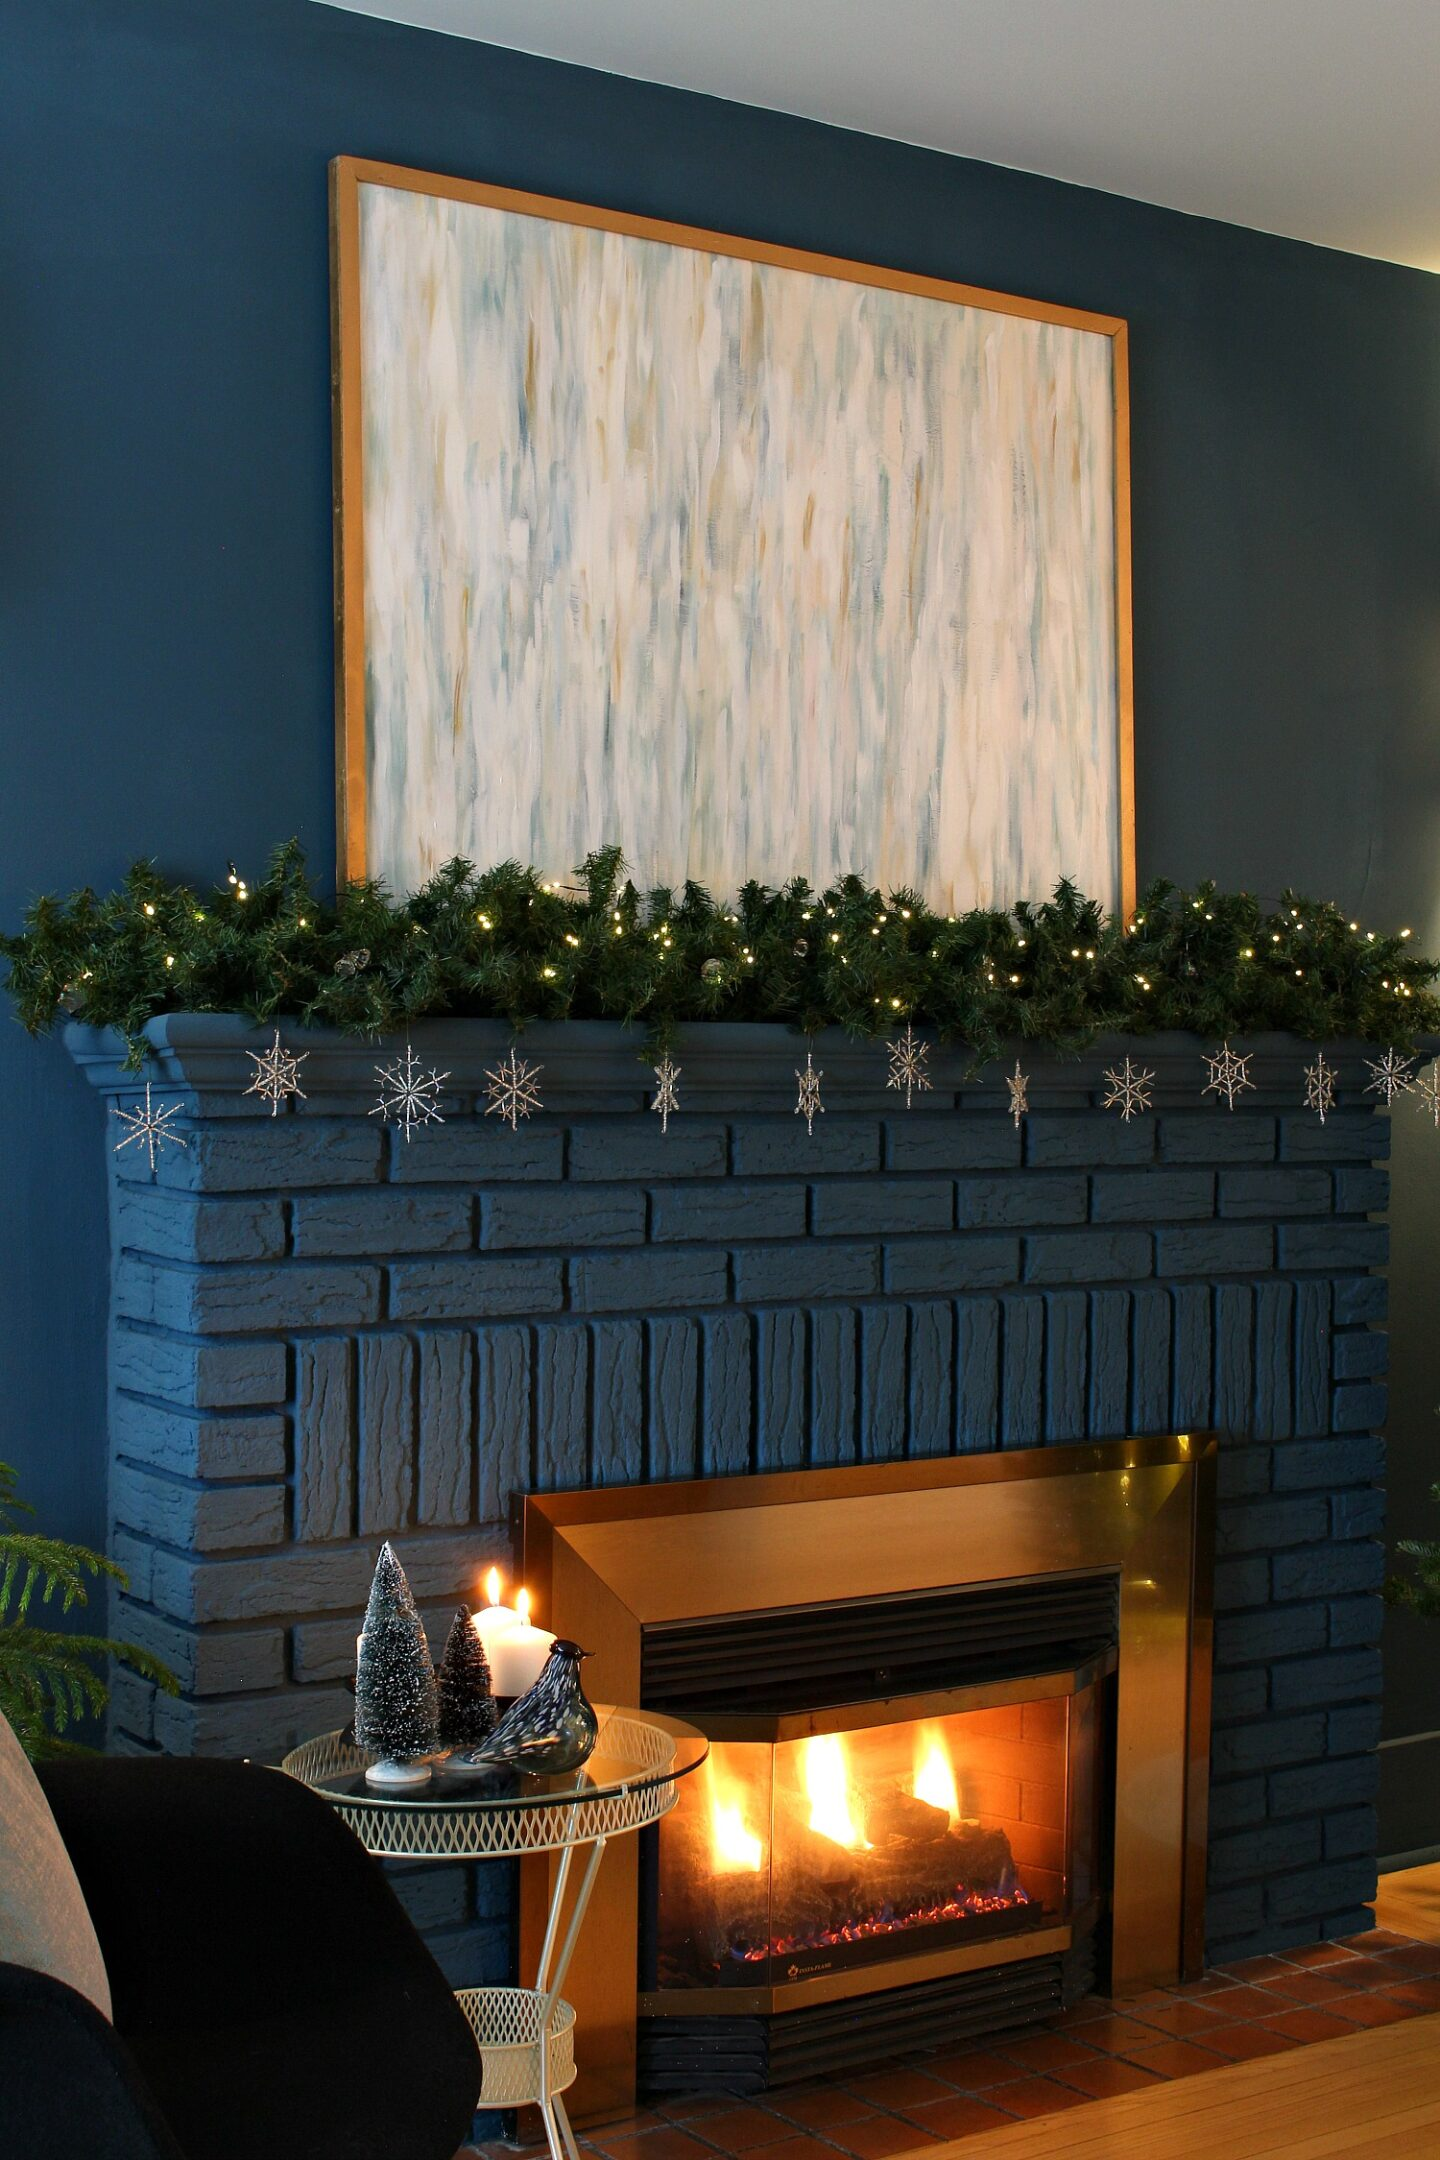 Wintry Mantel Decor That isn't Christmas Themed